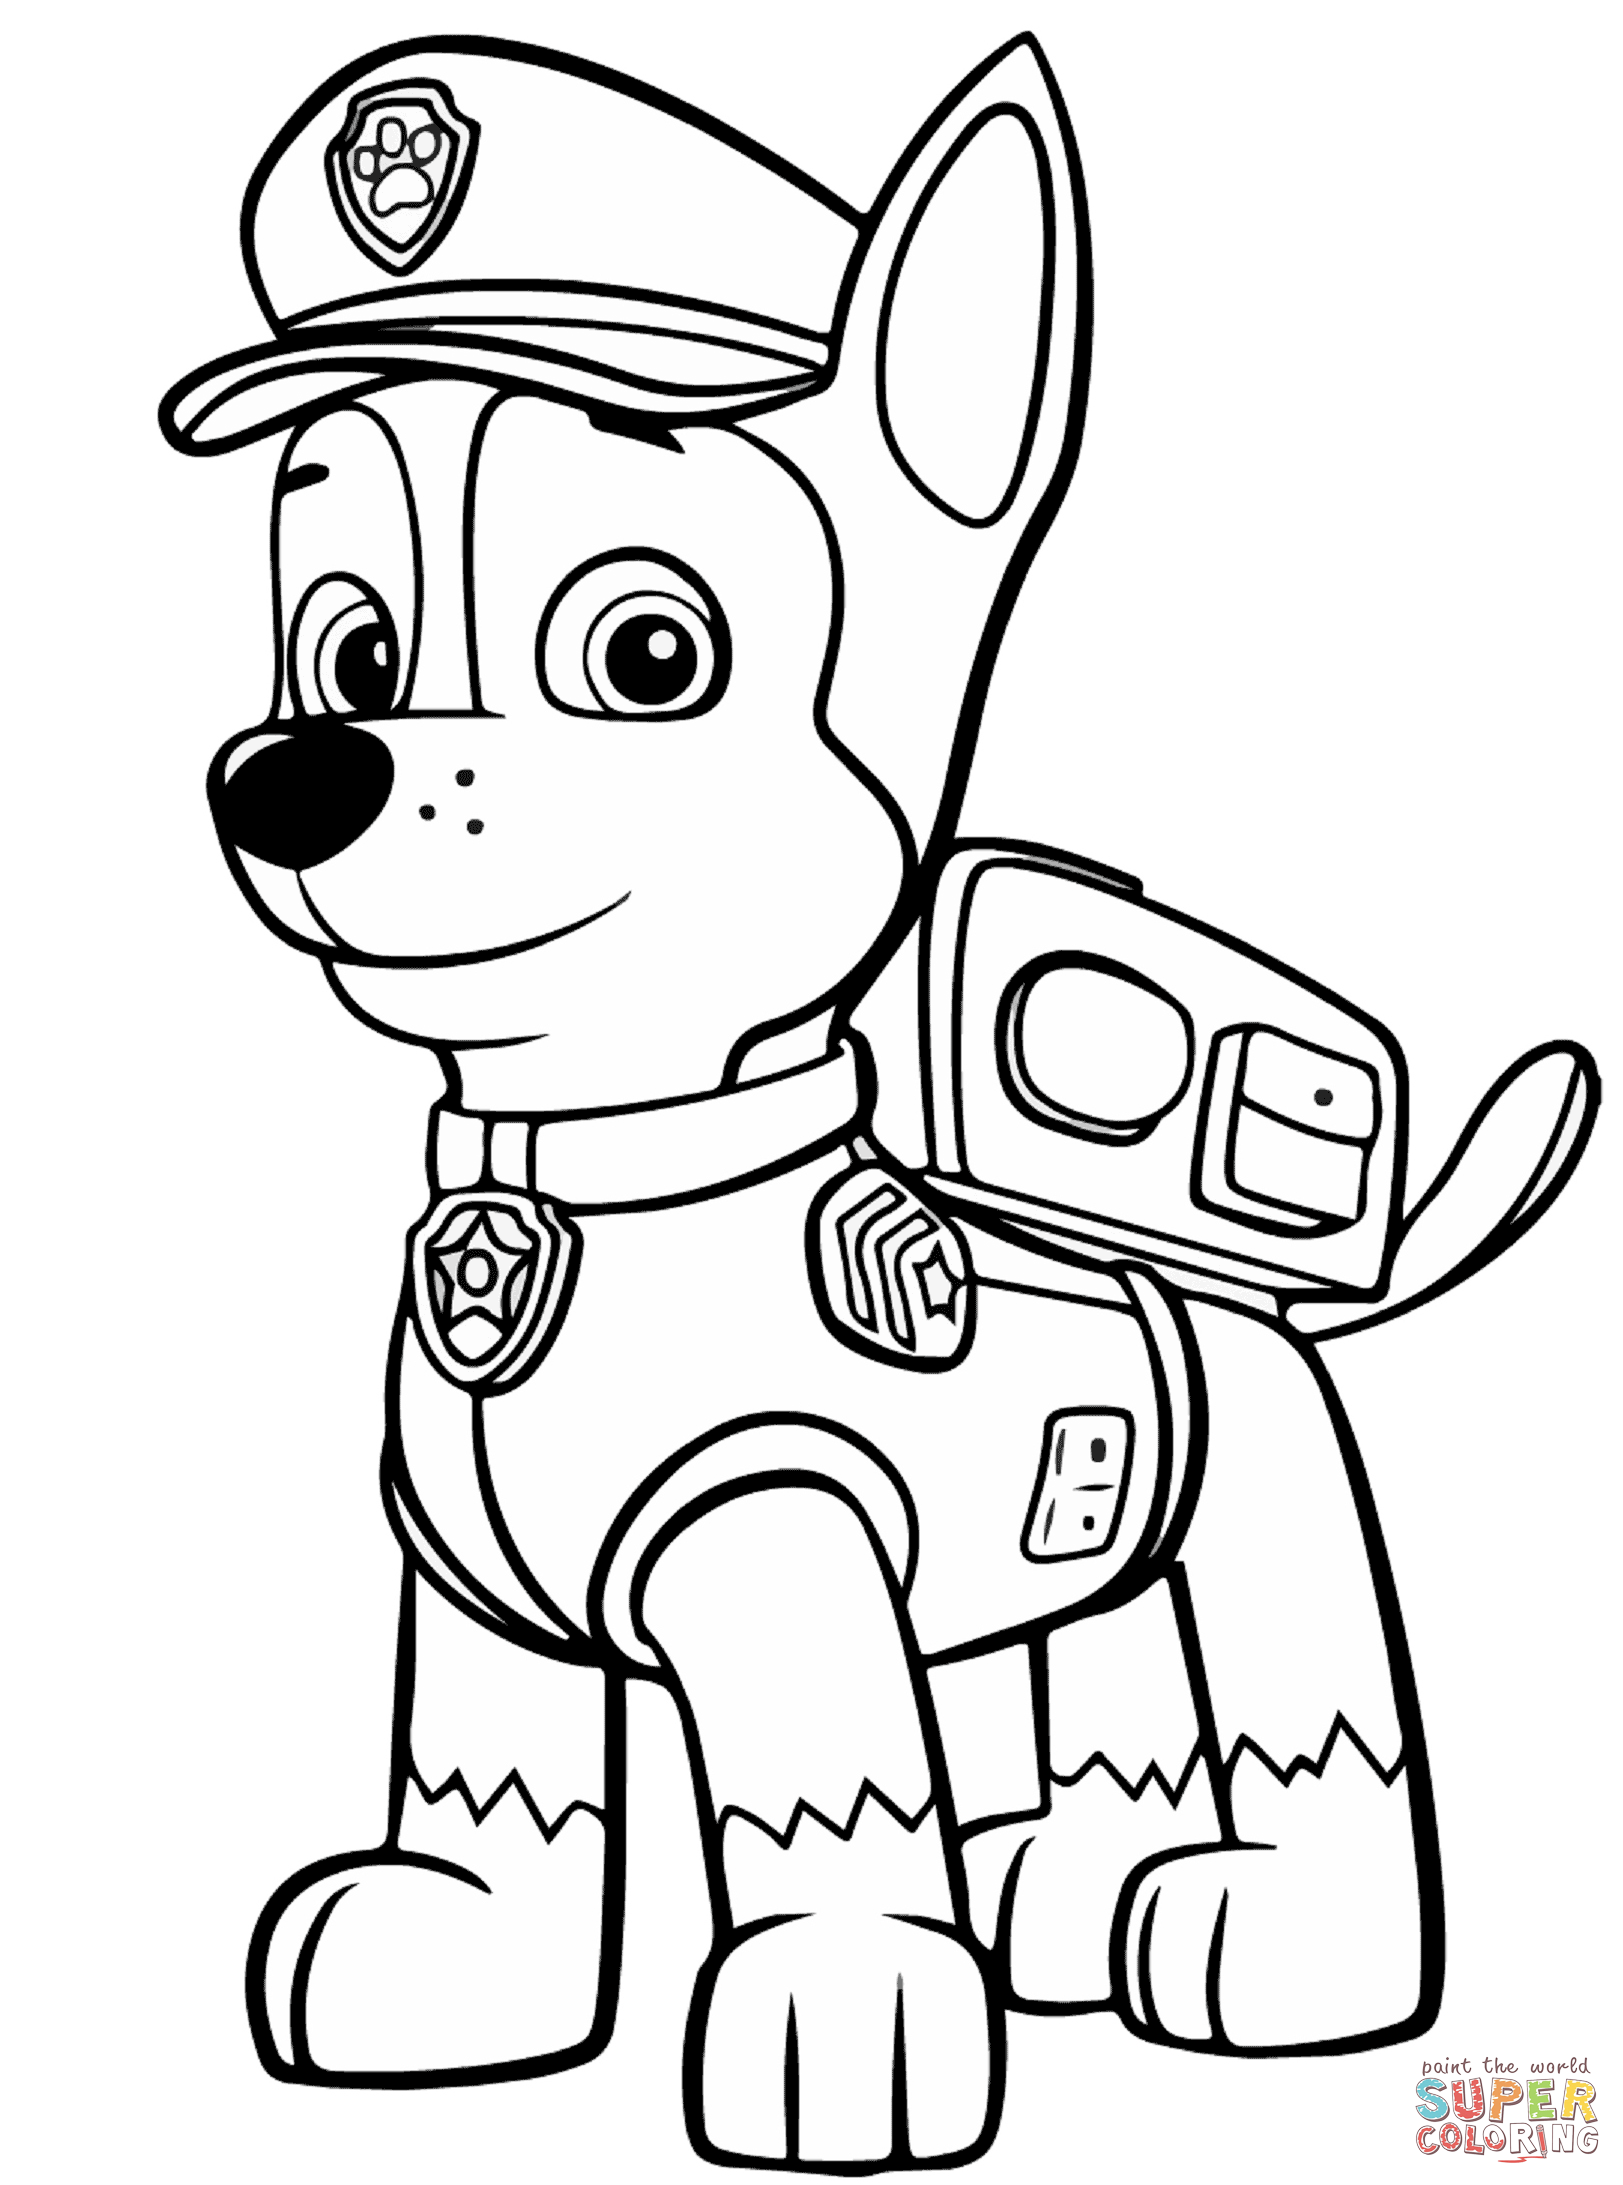 Paw Patrol Chase Coloring Pages 01 Paw Patrol Coloring Paw Patrol Coloring Pages Chase Paw Patrol